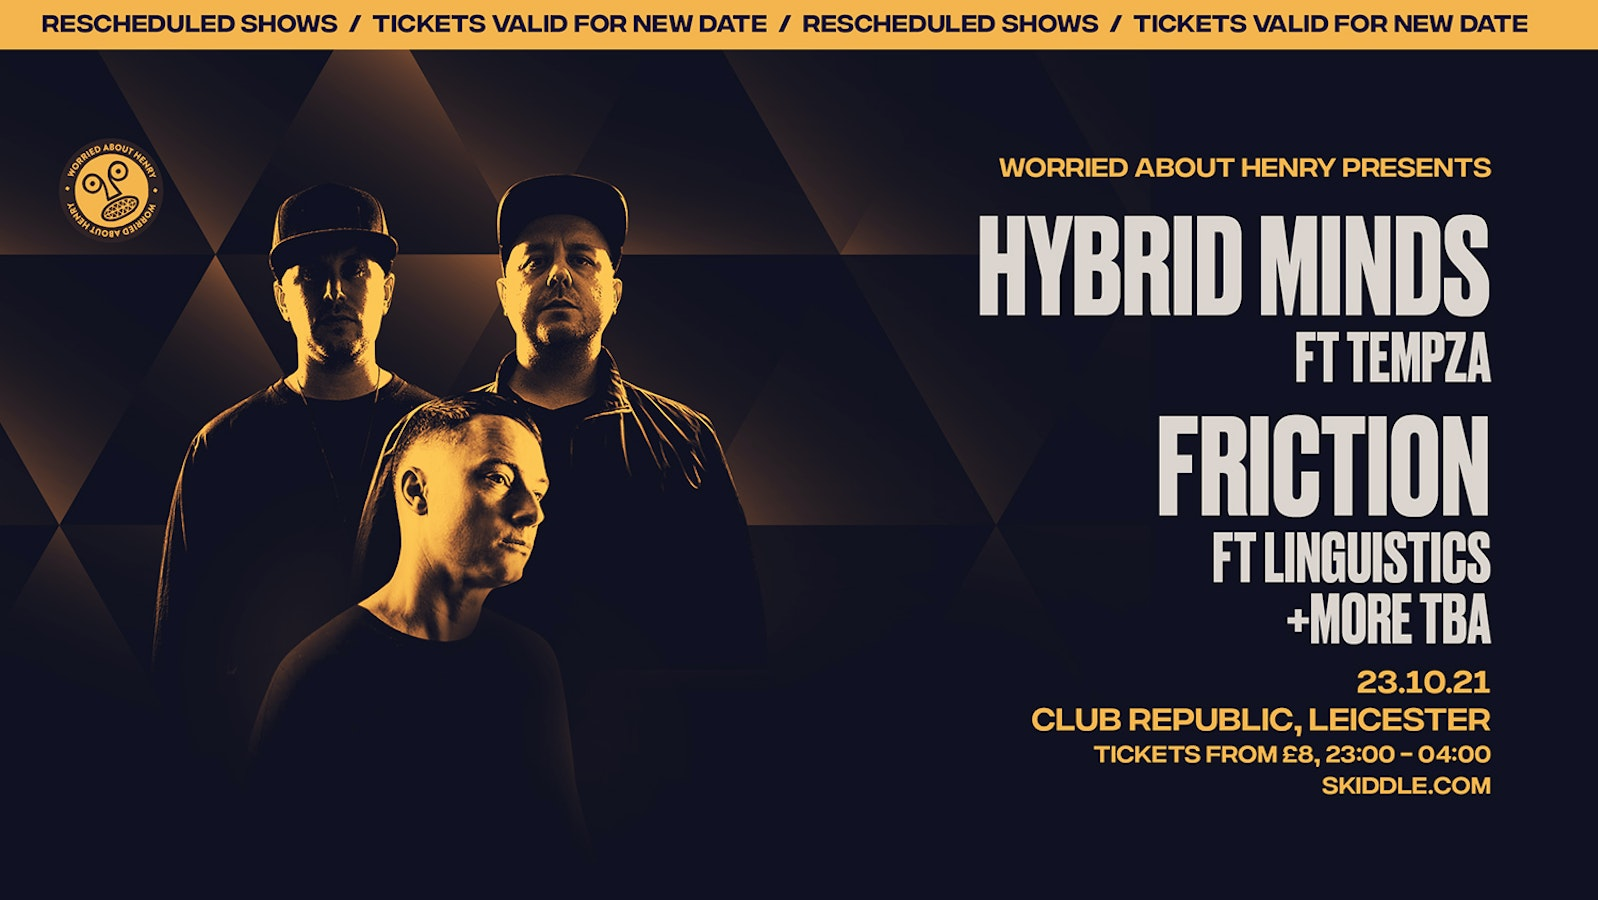 W.A.H. PRESENT: HYBRID MINDS / FRICTION / VOLTAGE / TURNO (RESCHEDULED DATE – TICKETS FROM ORIGINAL EVENT VALID)